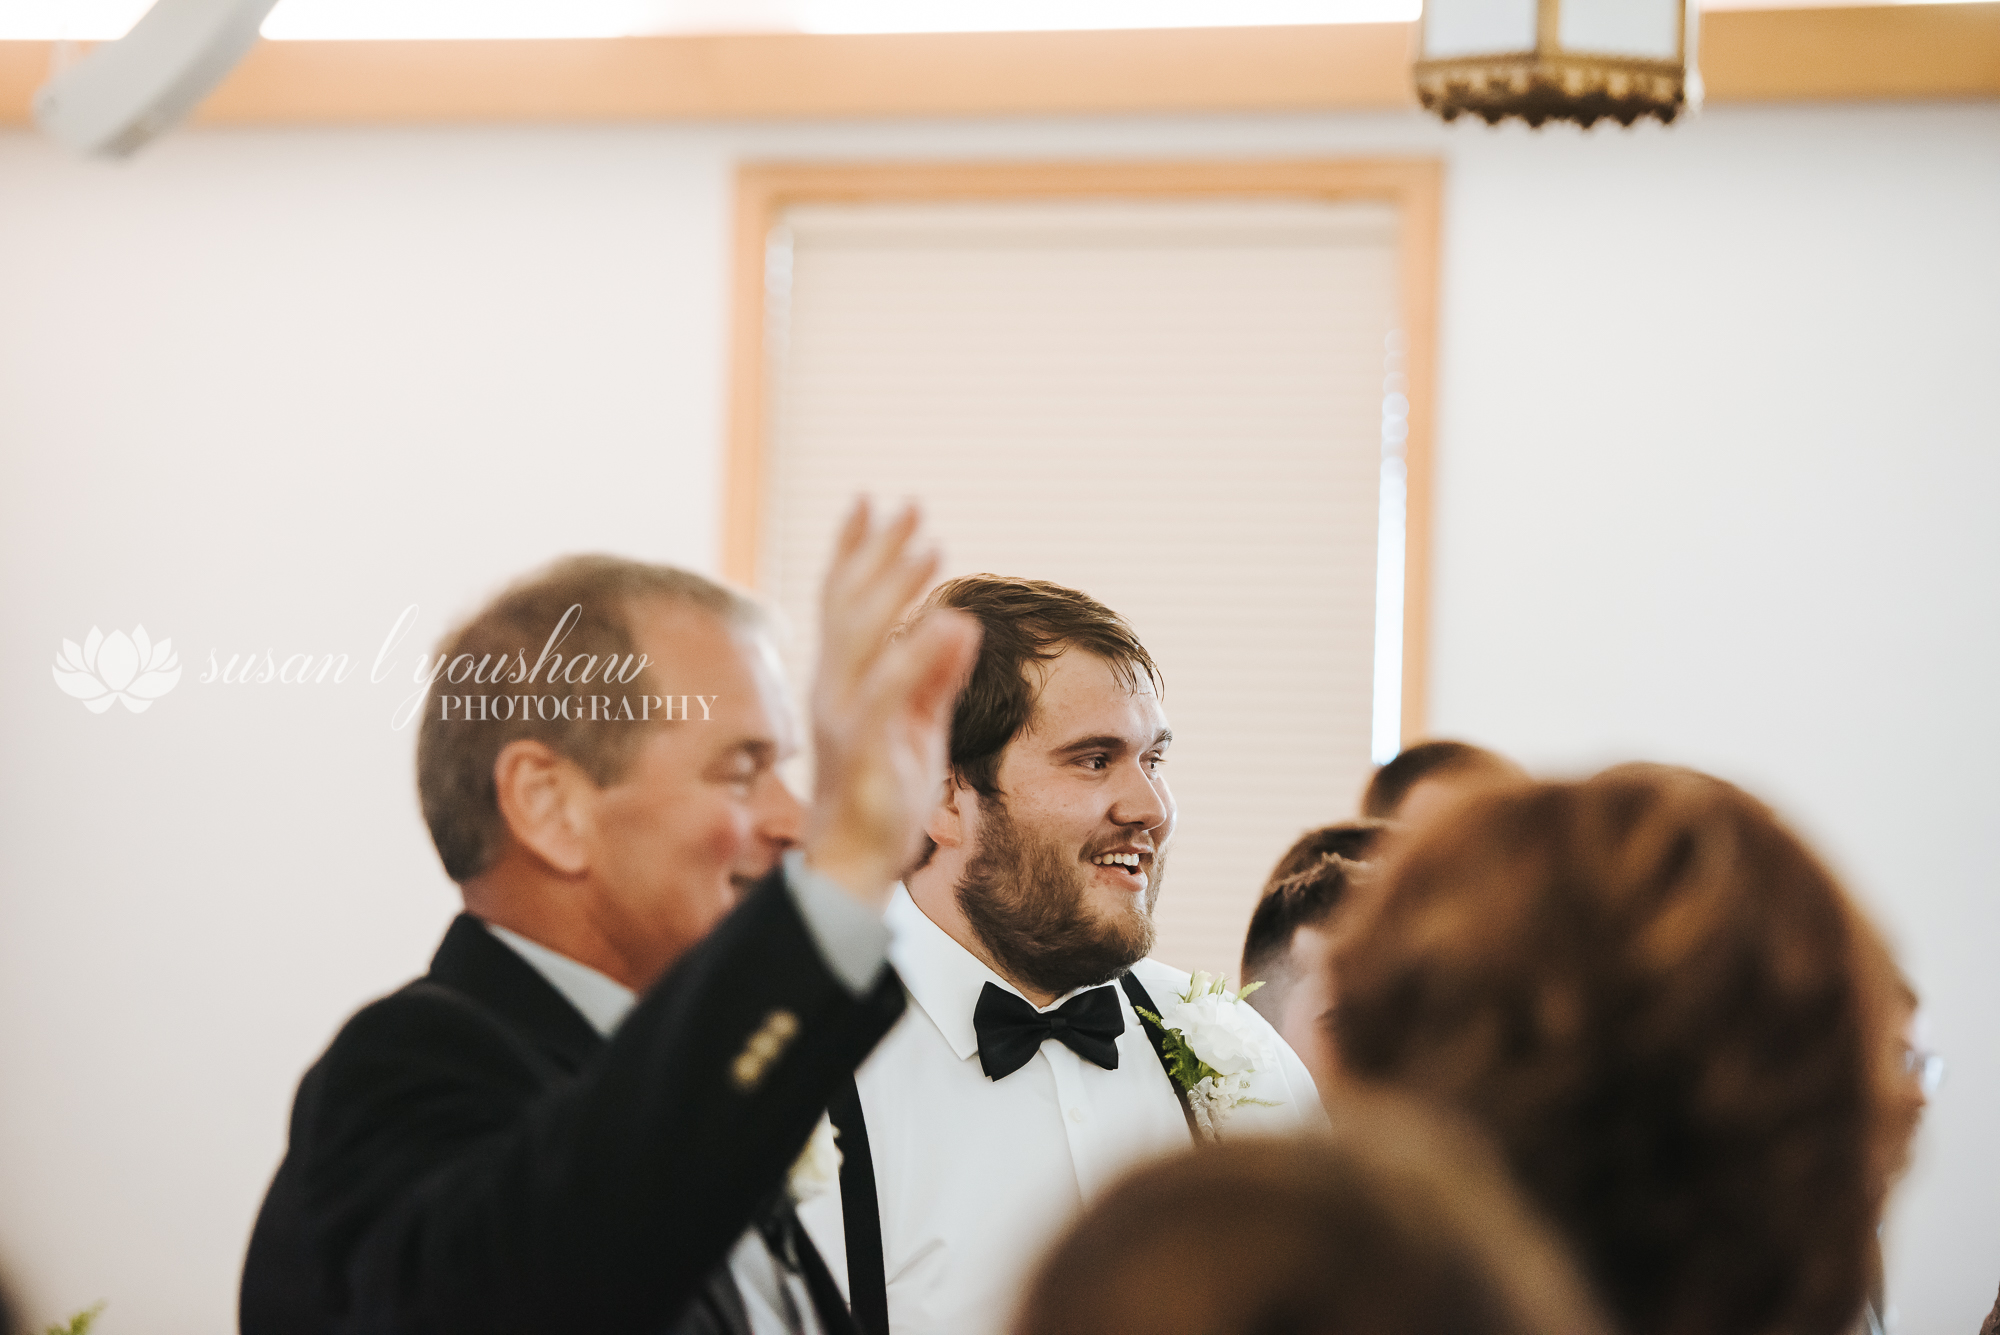 Katelyn and Wes Wedding Photos 07-13-2019 SLY Photography-58.jpg